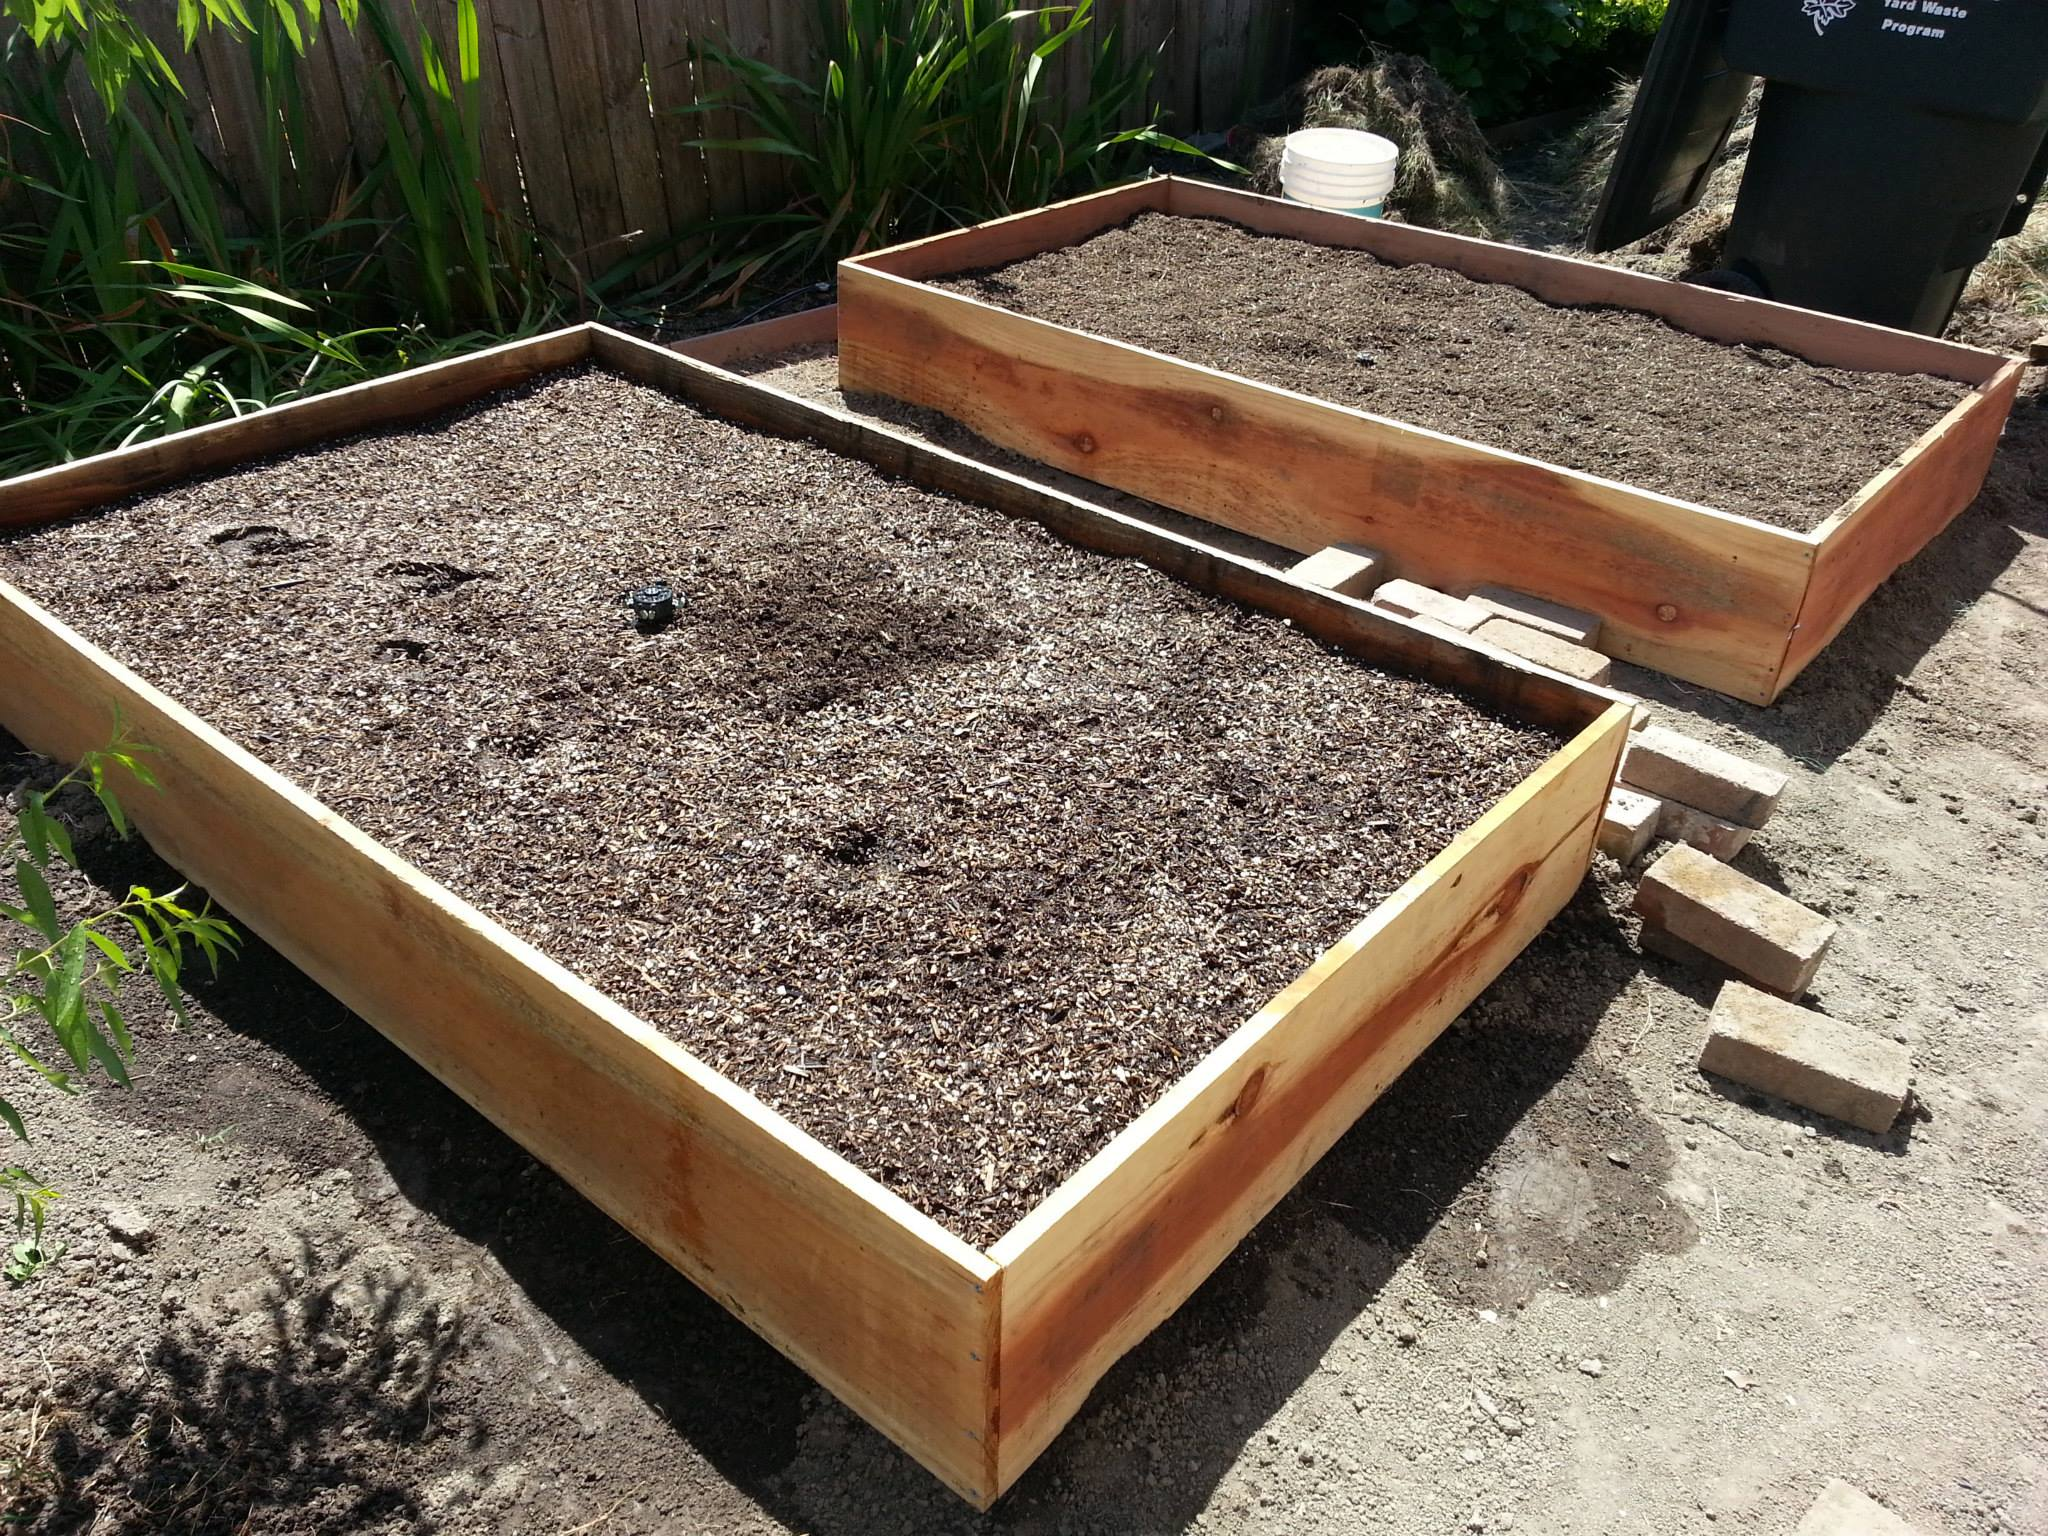 Raised Bed Ideas For Your Garden – MK Liry on 2 x 8 retaining wall, 2 x 6 raised garden bed, 2 ft raised garden bed, 4 x 8 raised garden bed, 2 x 4 raised garden bed,